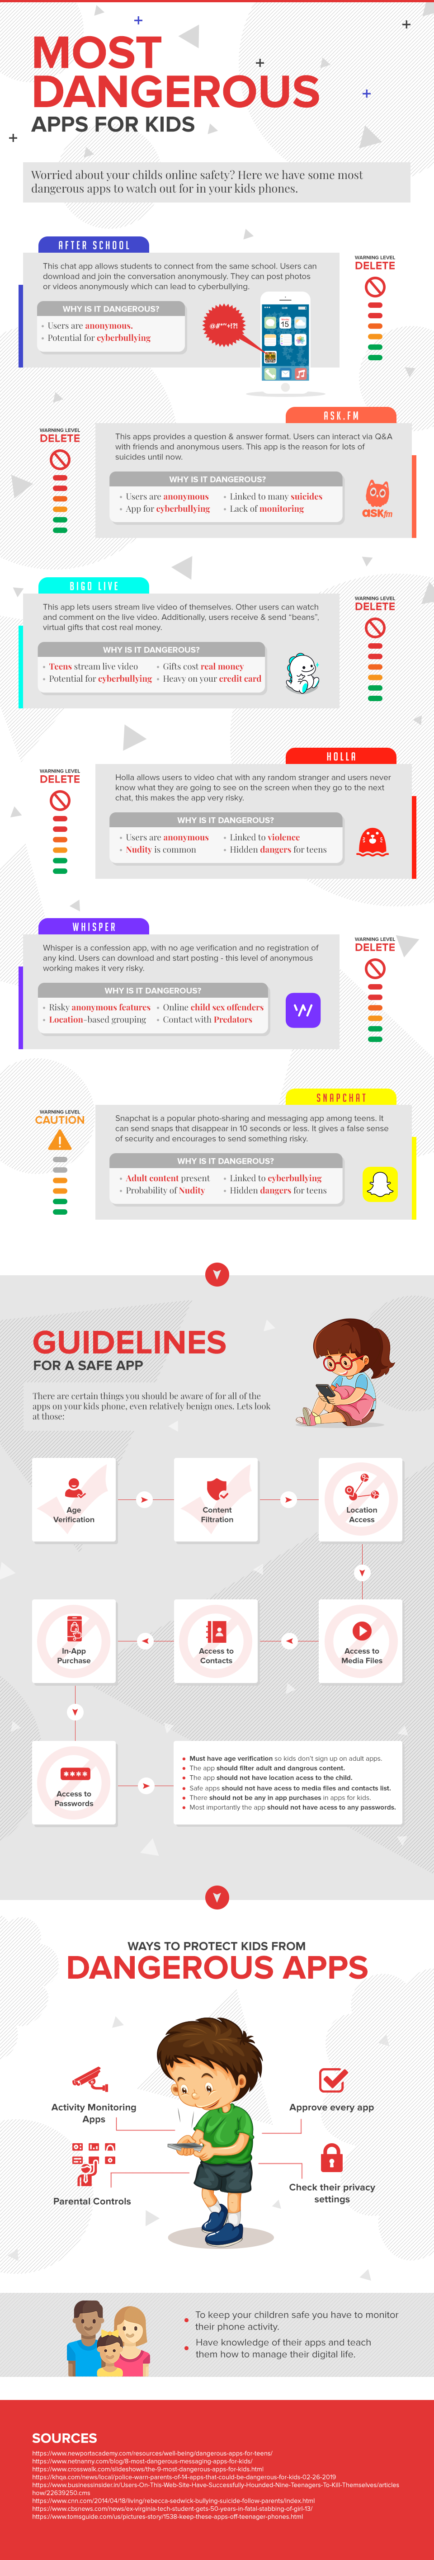 Kids App Safety Infographic